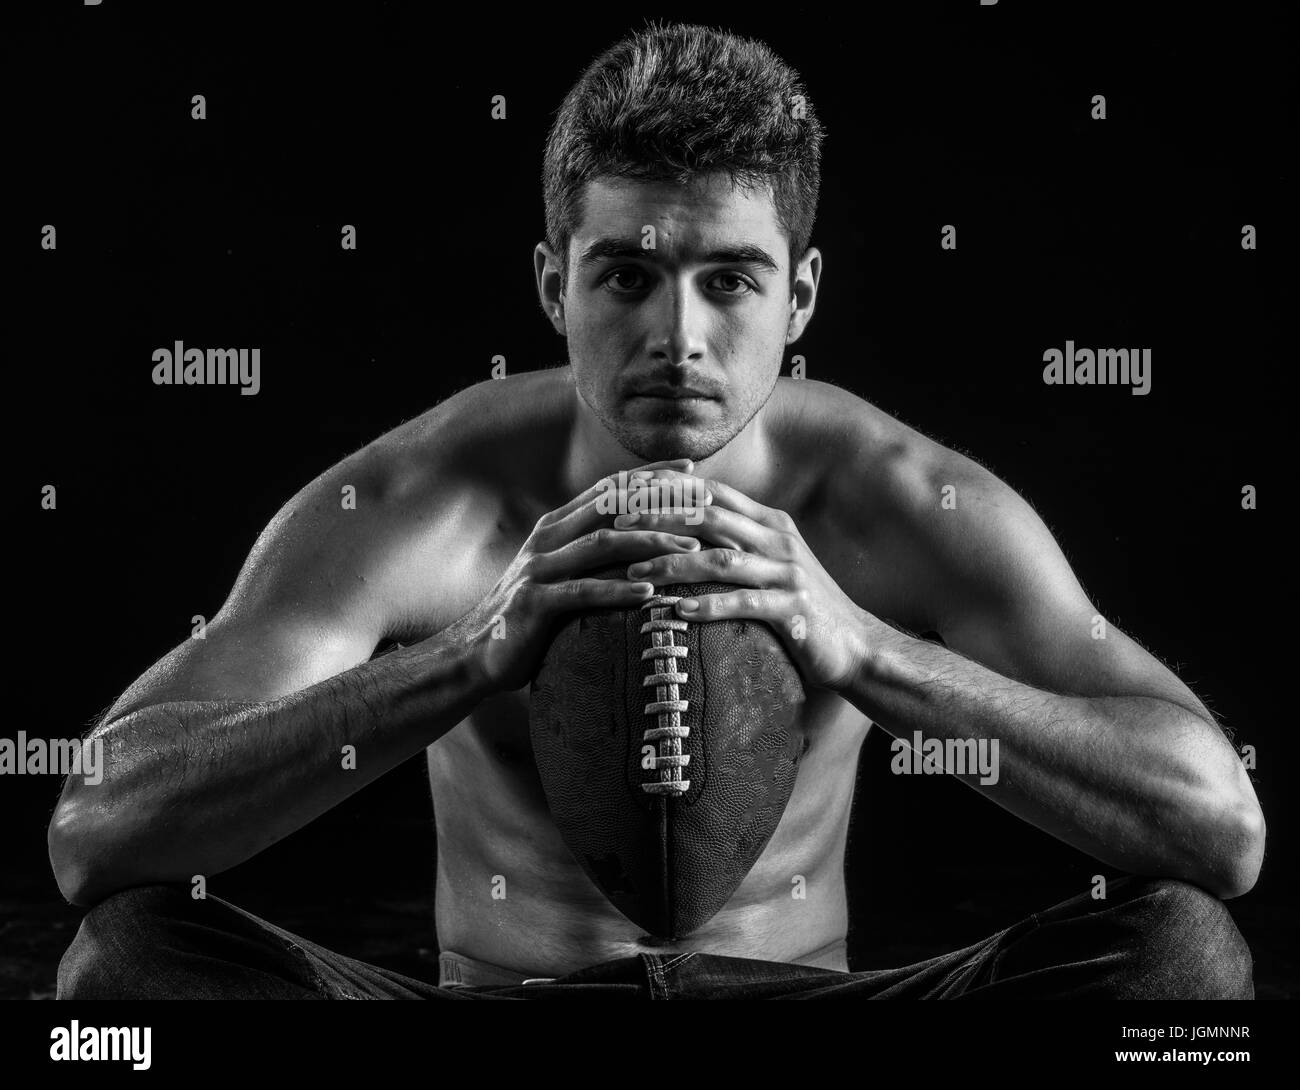 Football player portrait holding american football staring. - Stock Image